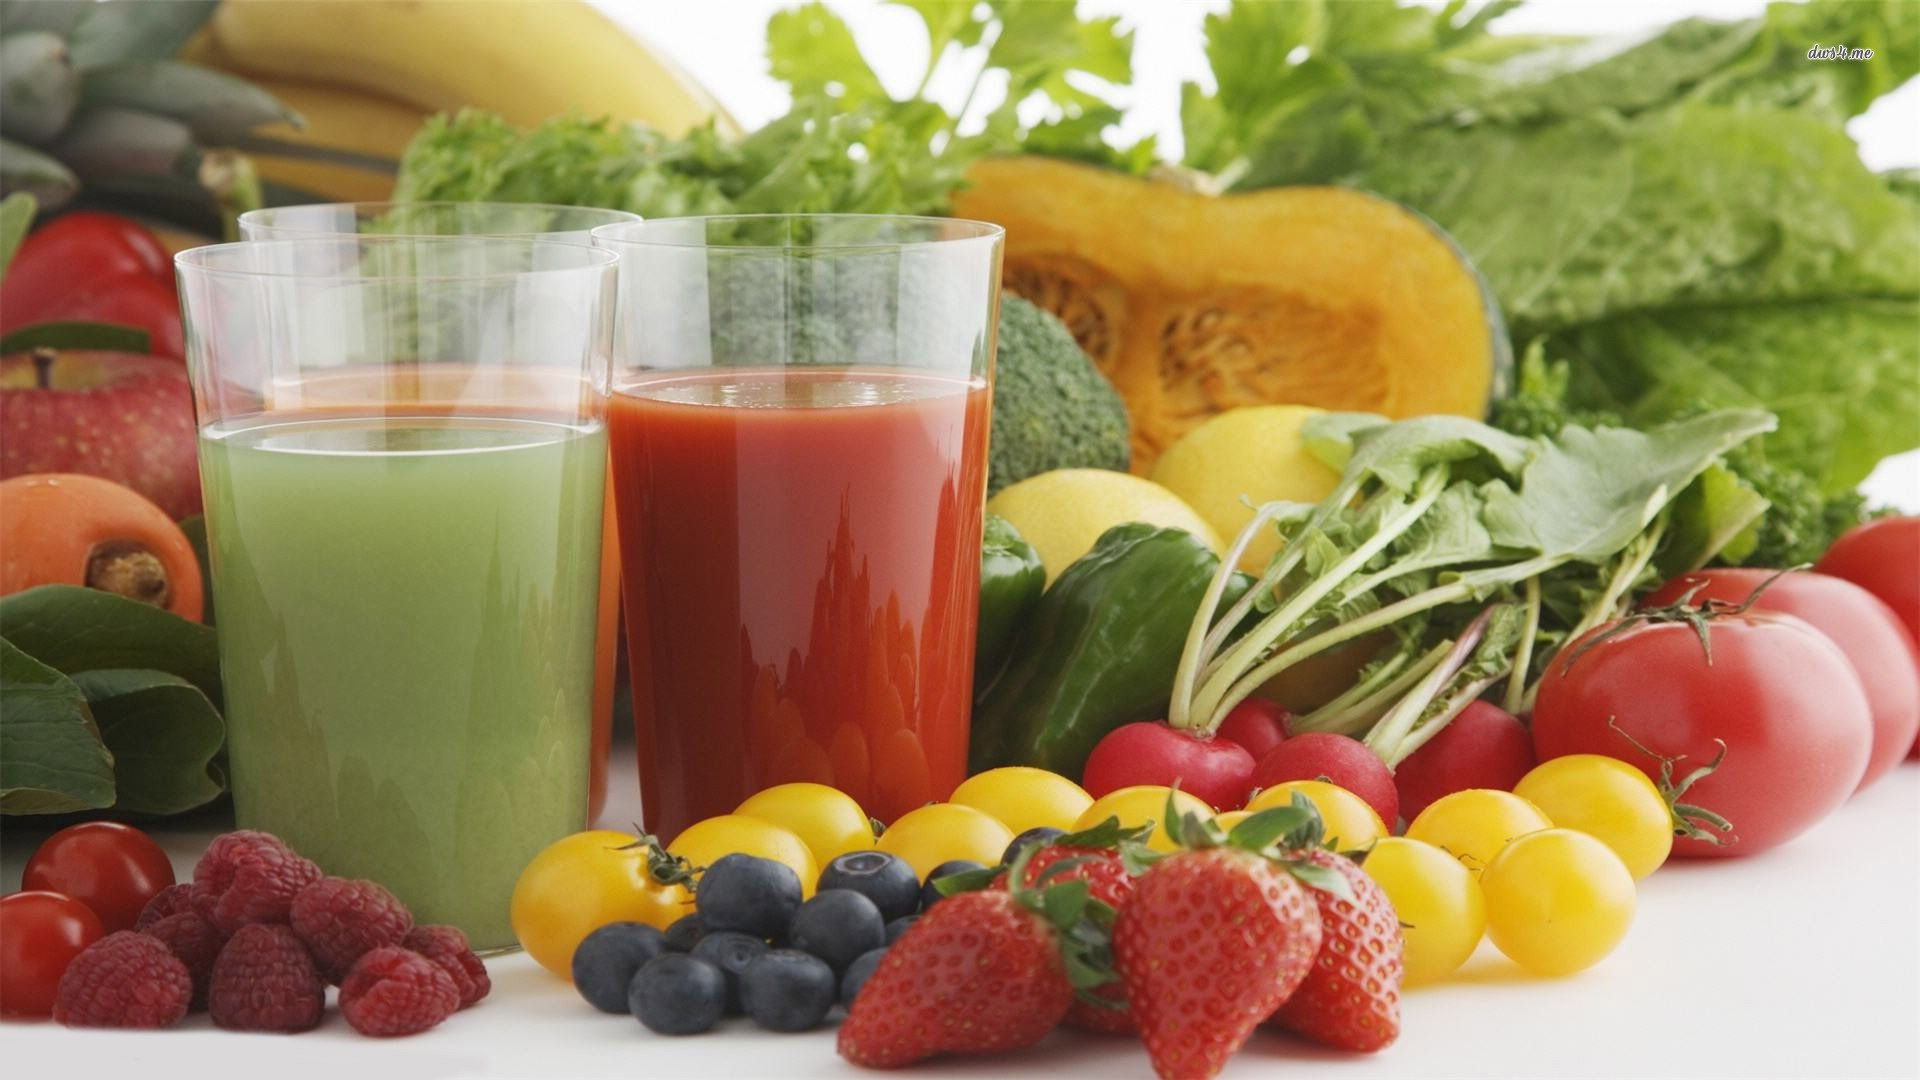 List-of-the-Top-Fruit-Vegetable-Juice-Shops-in-Sharjah-with-Contact-Details